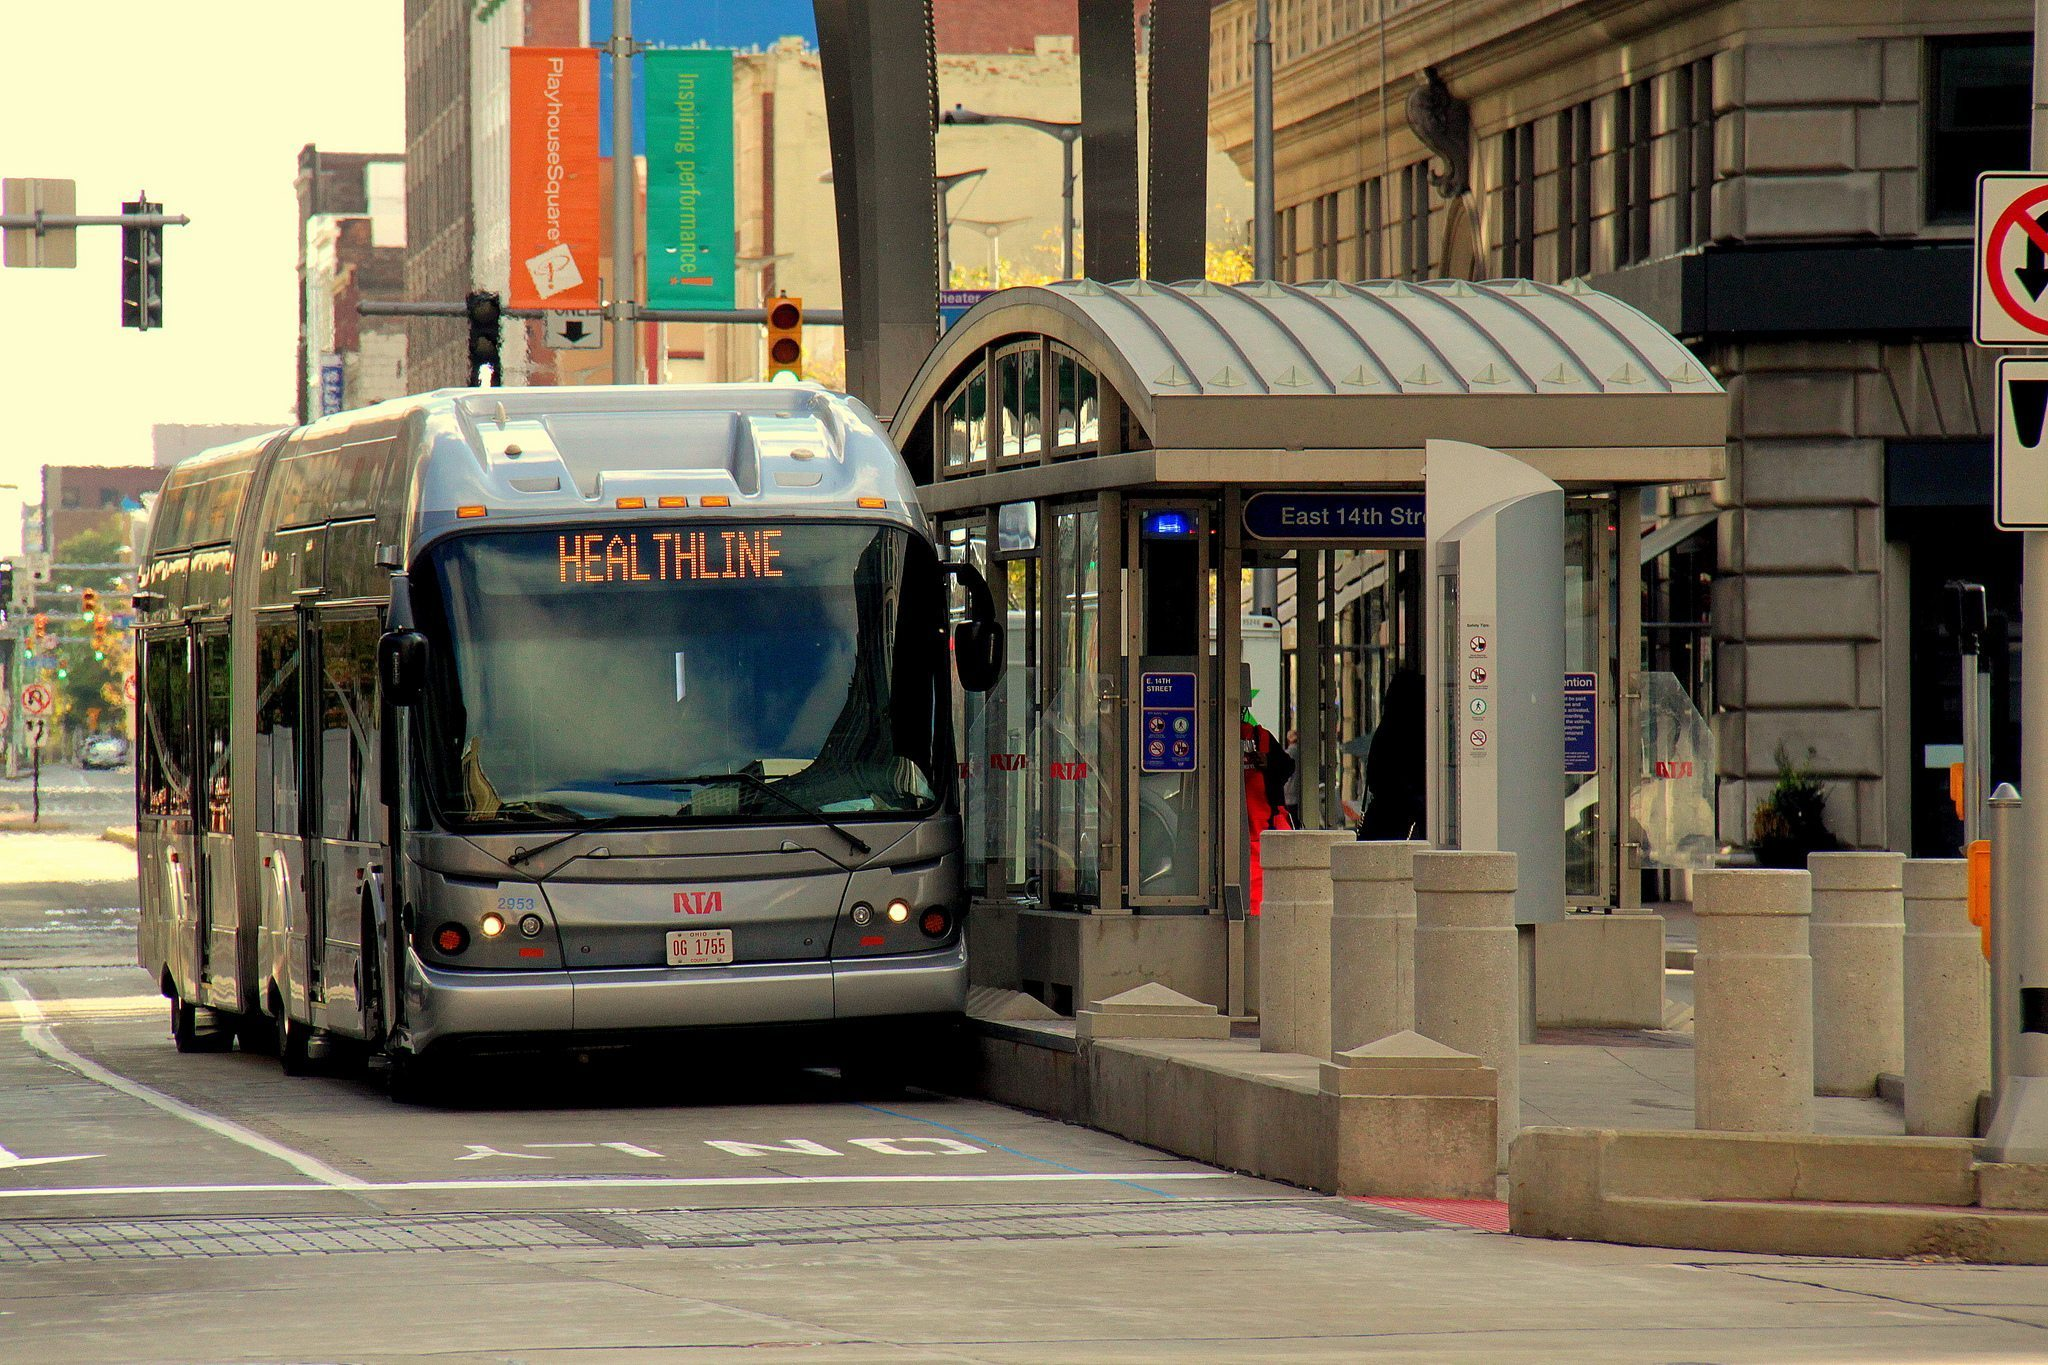 BRT in Cleveland. Photo via Flickr/Wyliepoon